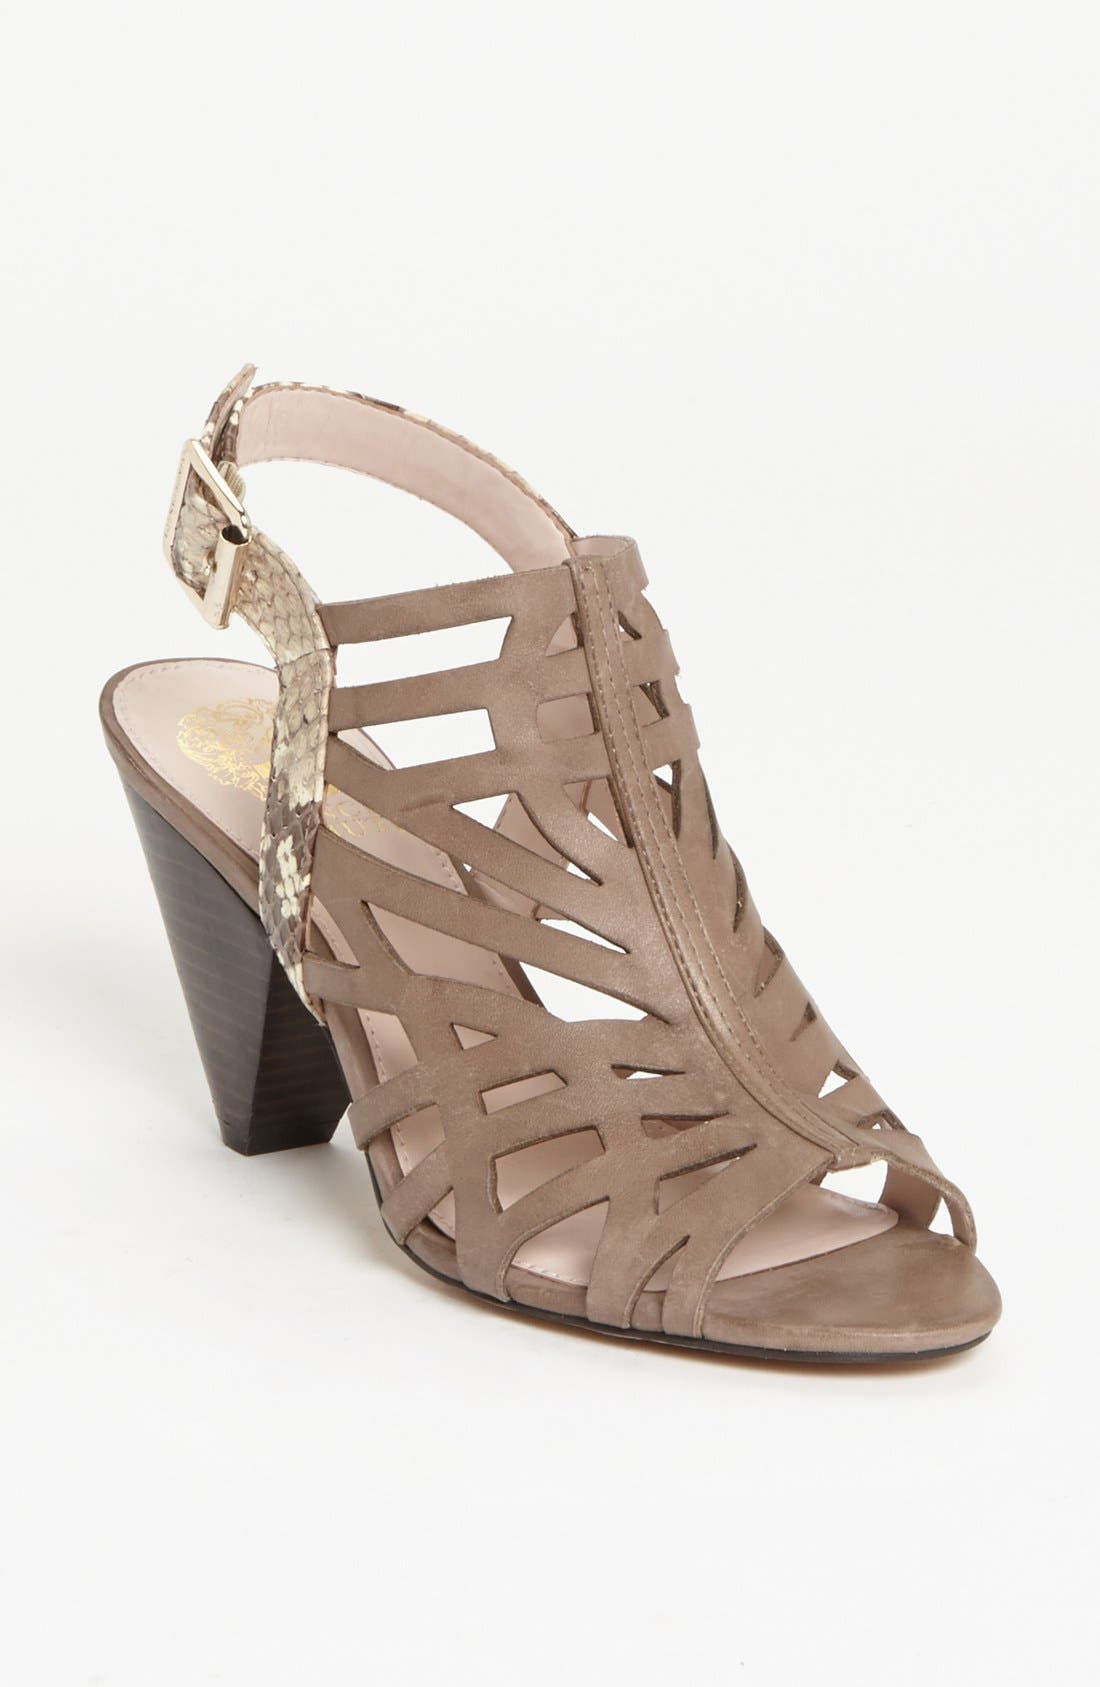 Alternate Image 1 Selected - Vince Camuto 'Elem' Sandal